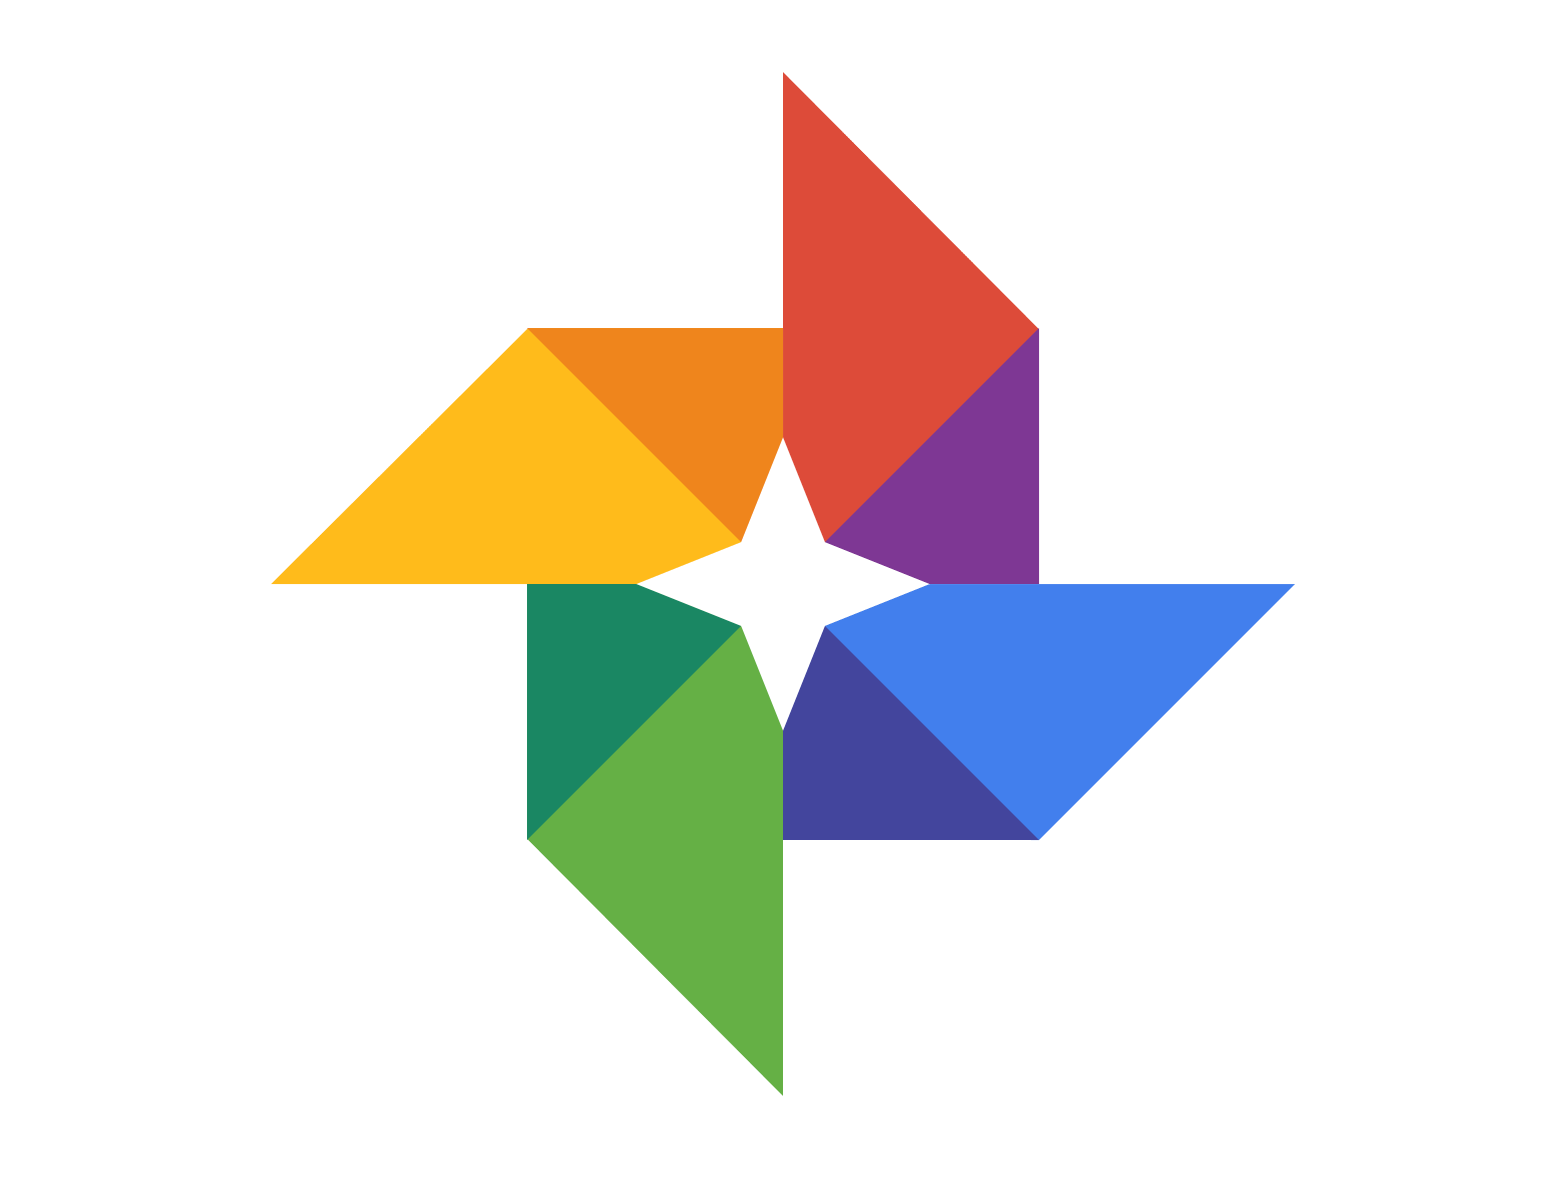 nexusae0_Google-Photos-icon-logo.png